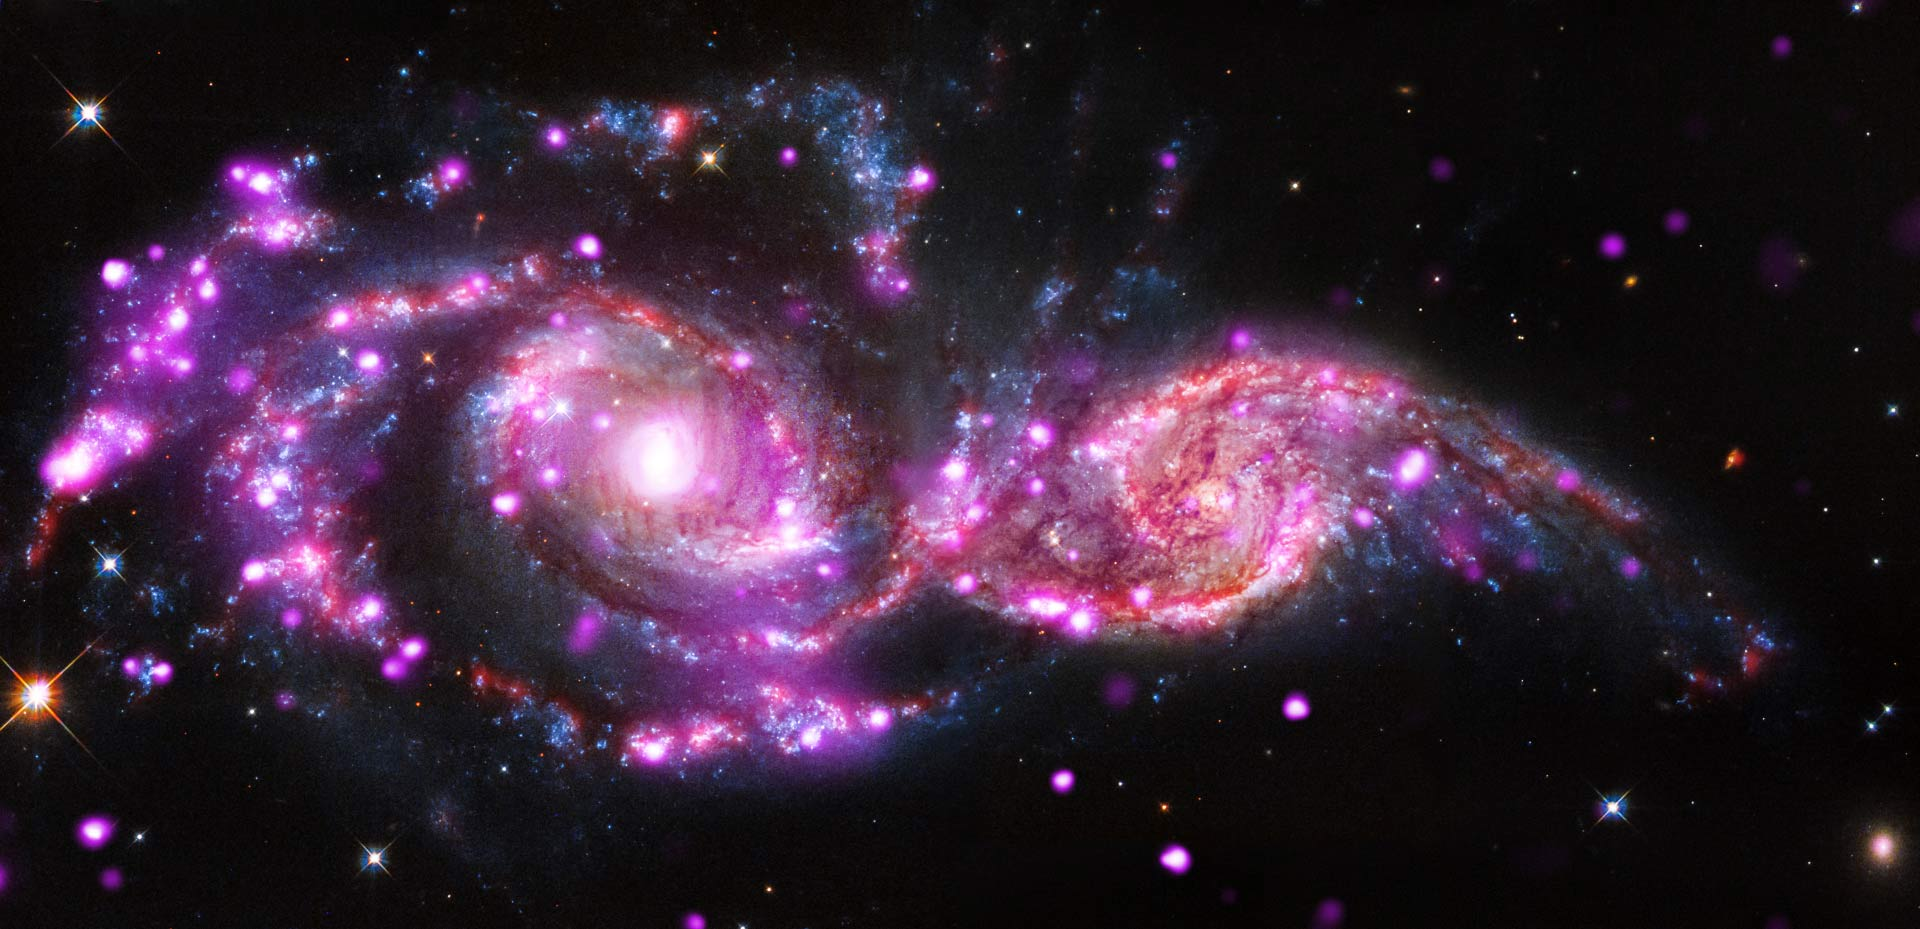 Space Observatories Zero in on Colliding Galaxy Pair NGC 2207.